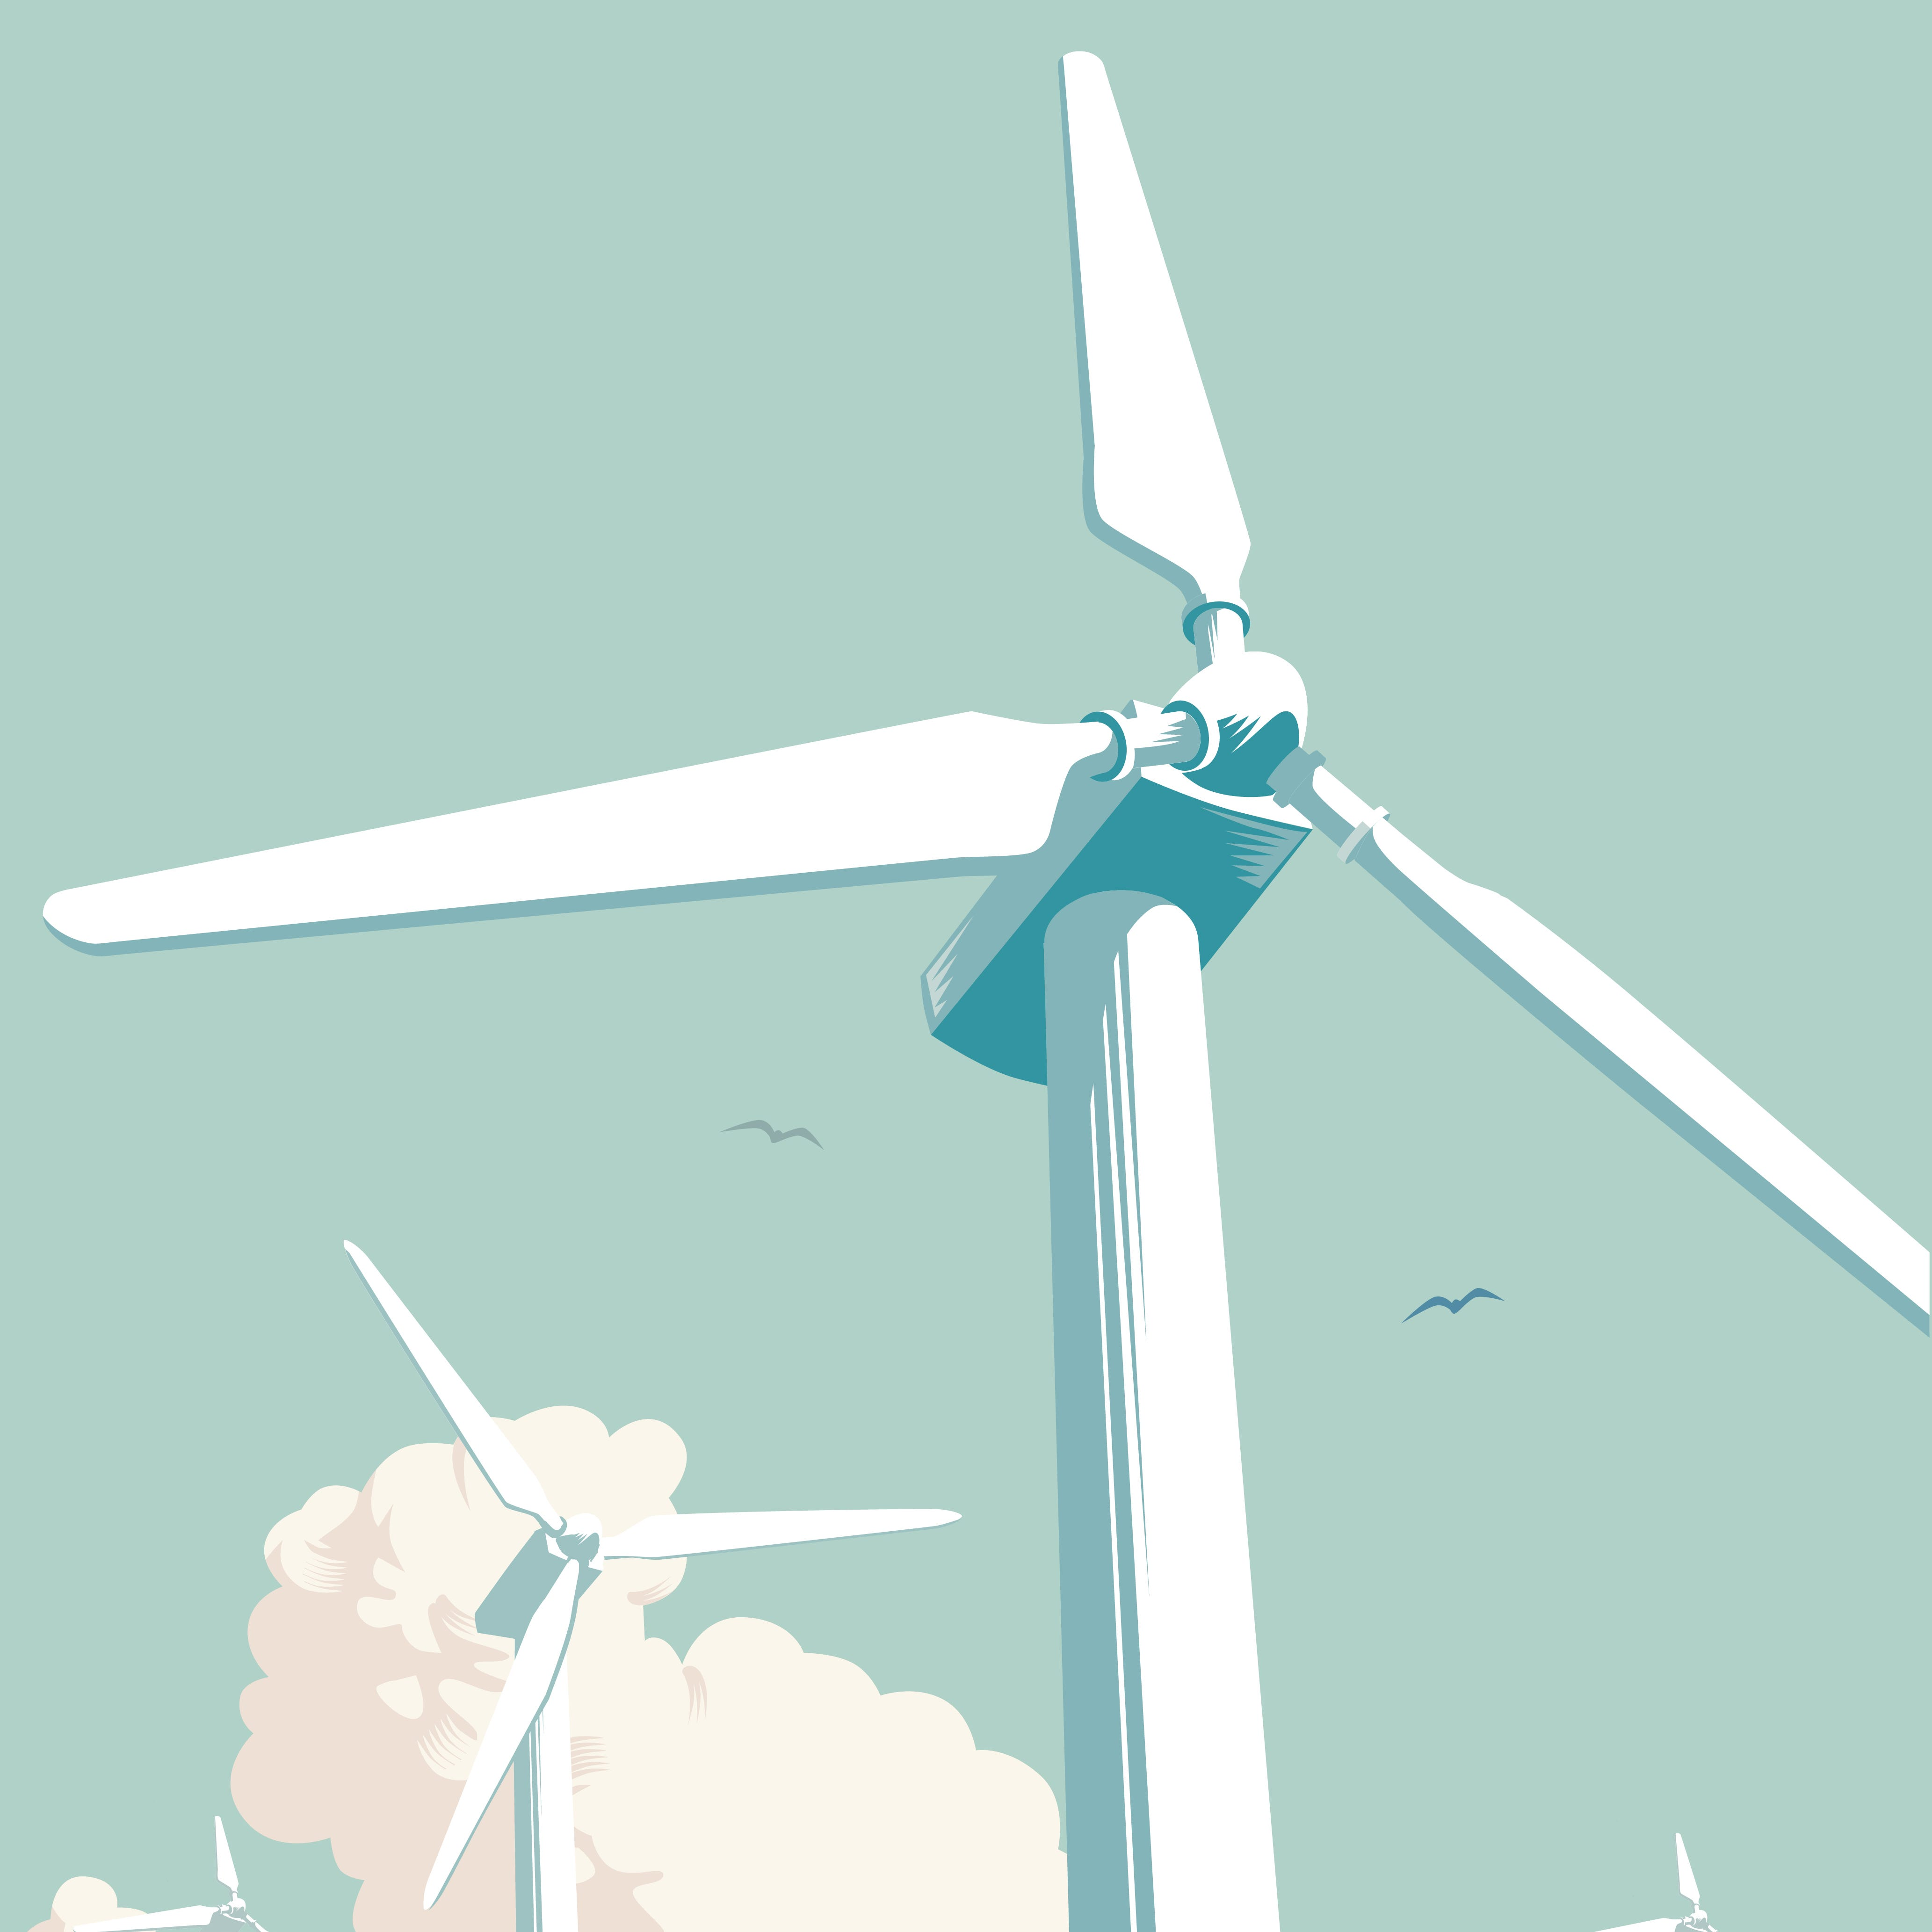 Your Turn: Wind farms threaten property values, birds